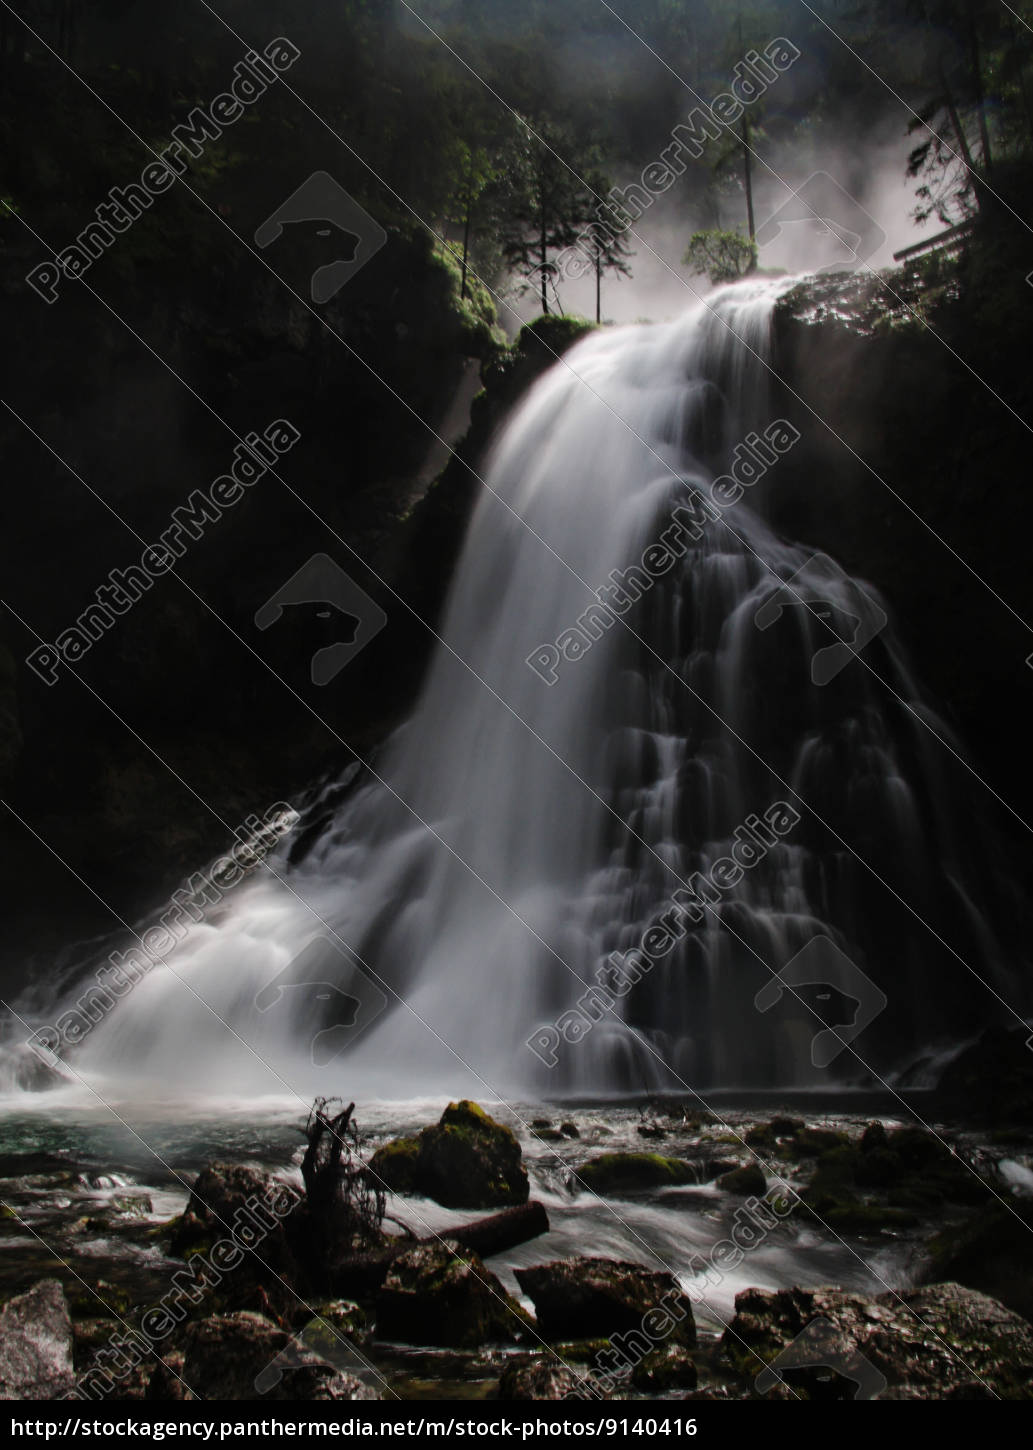 rock, waterfall, spray, river bed, mountain, water - 9140416